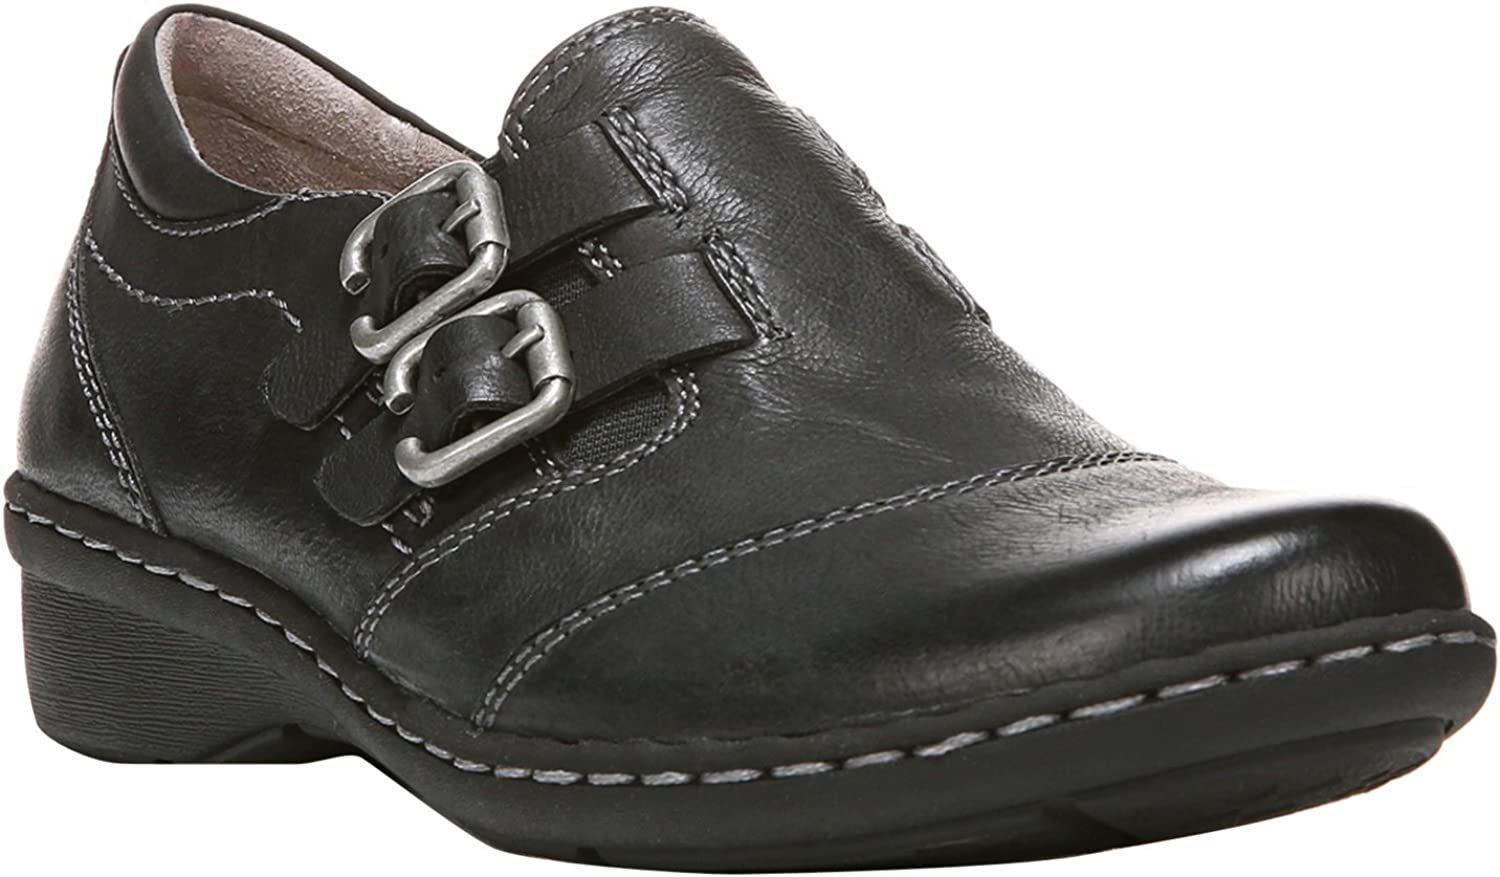 Naturalizer Womens Rapid Leather Buckle Casual Shoes